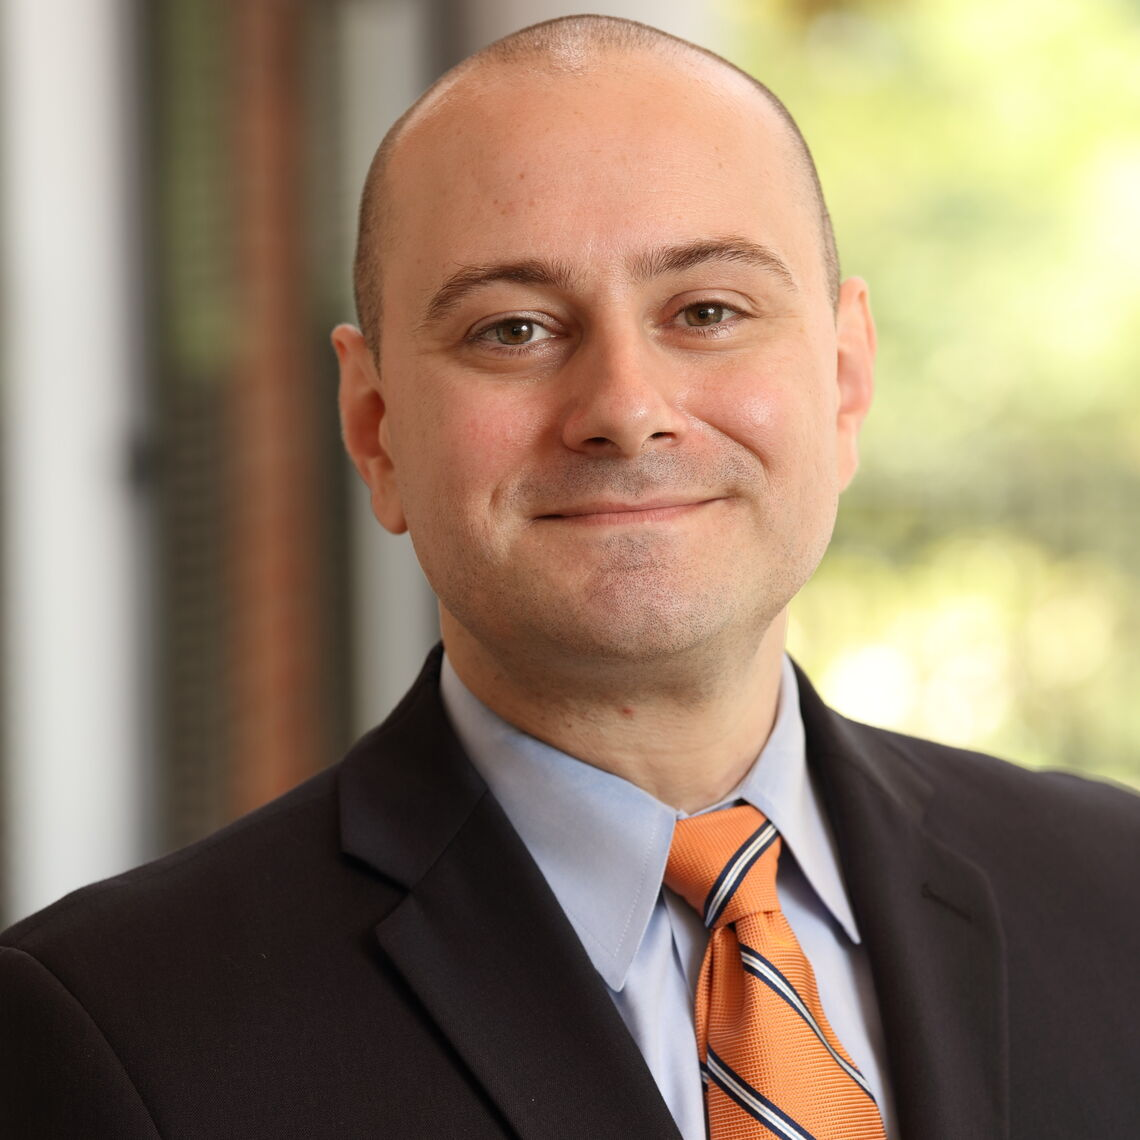 Michael Todd, the chief operating officer at the University of Virginia's School of Engineering, will serve as Franklin & Marshall's new vice president for finance and administration. He will begin his duties at F&M July 27.